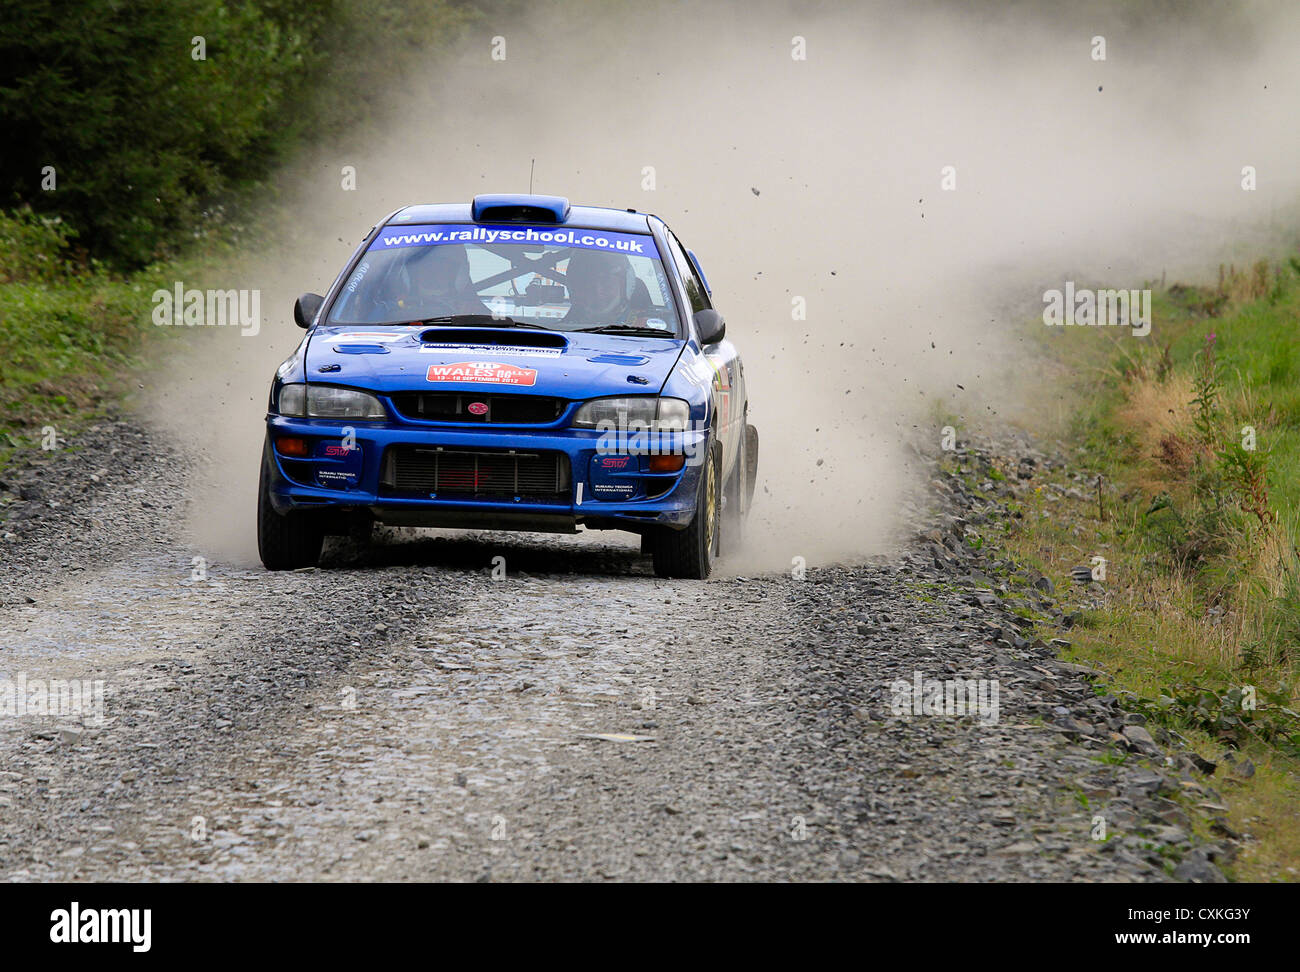 Rally Car Stock Photos & Rally Car Stock Images - Alamy